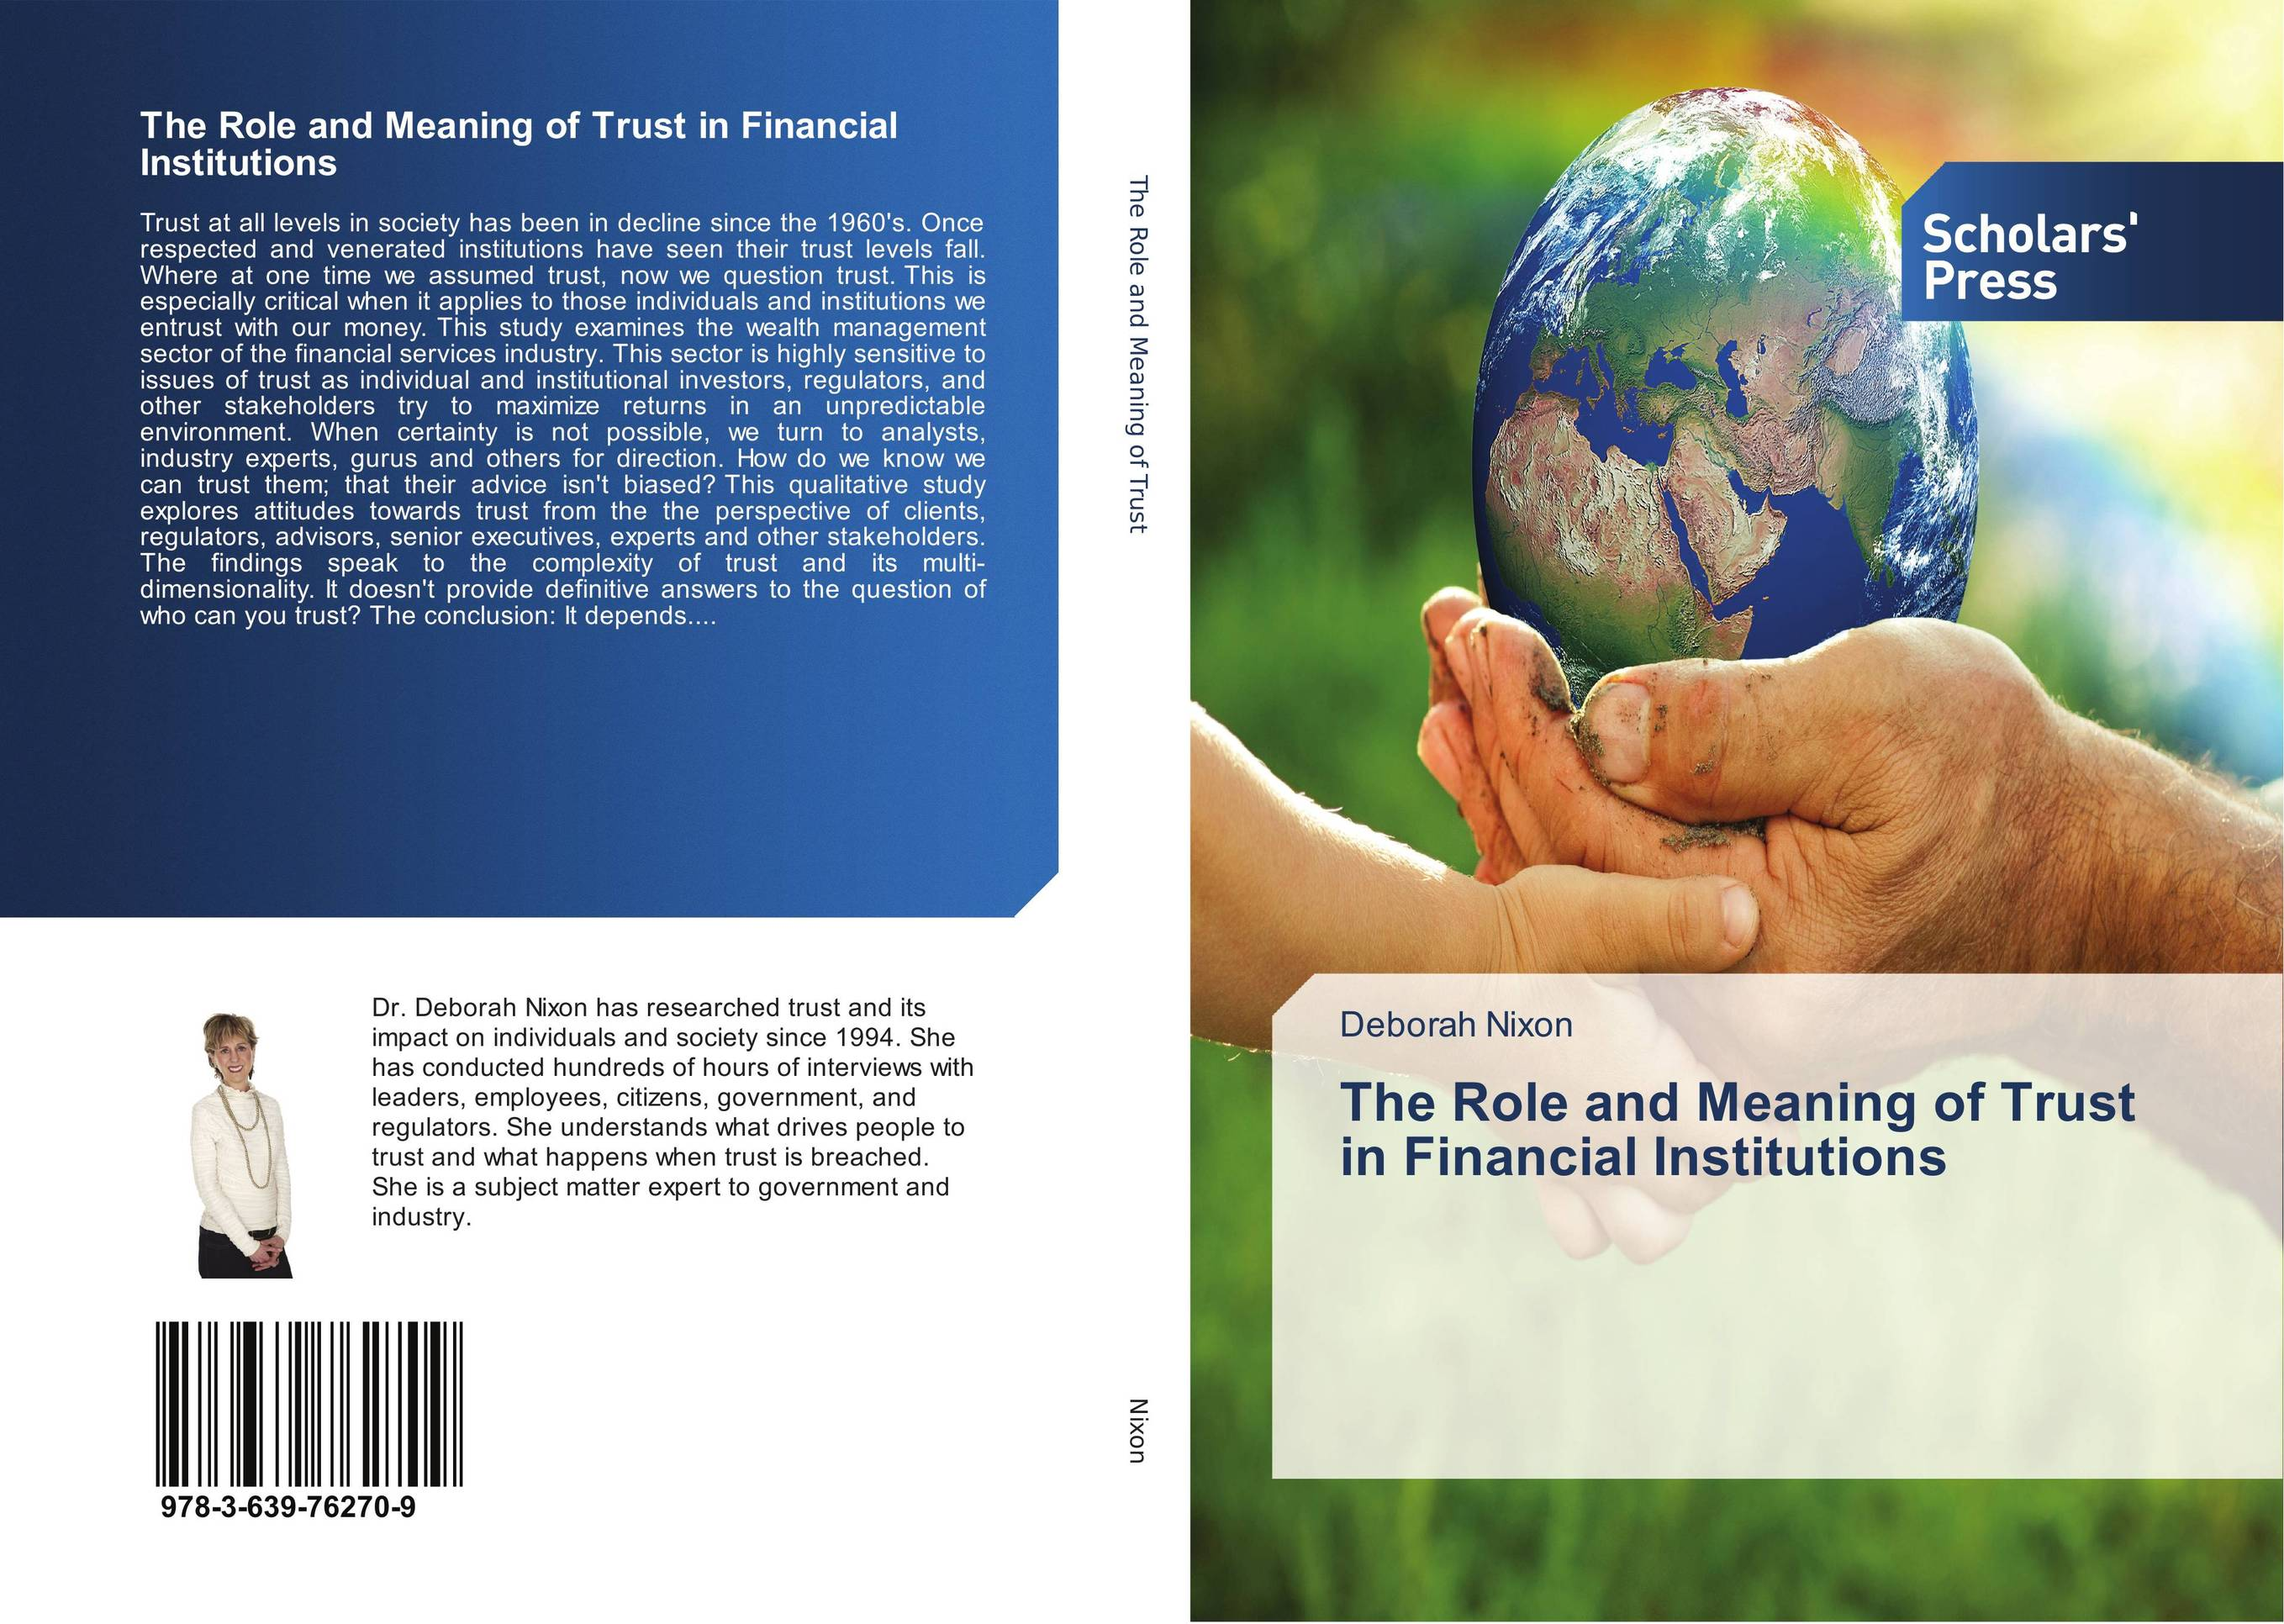 The Role and Meaning of Trust in Financial Institutions hitman anders and the meaning of it all